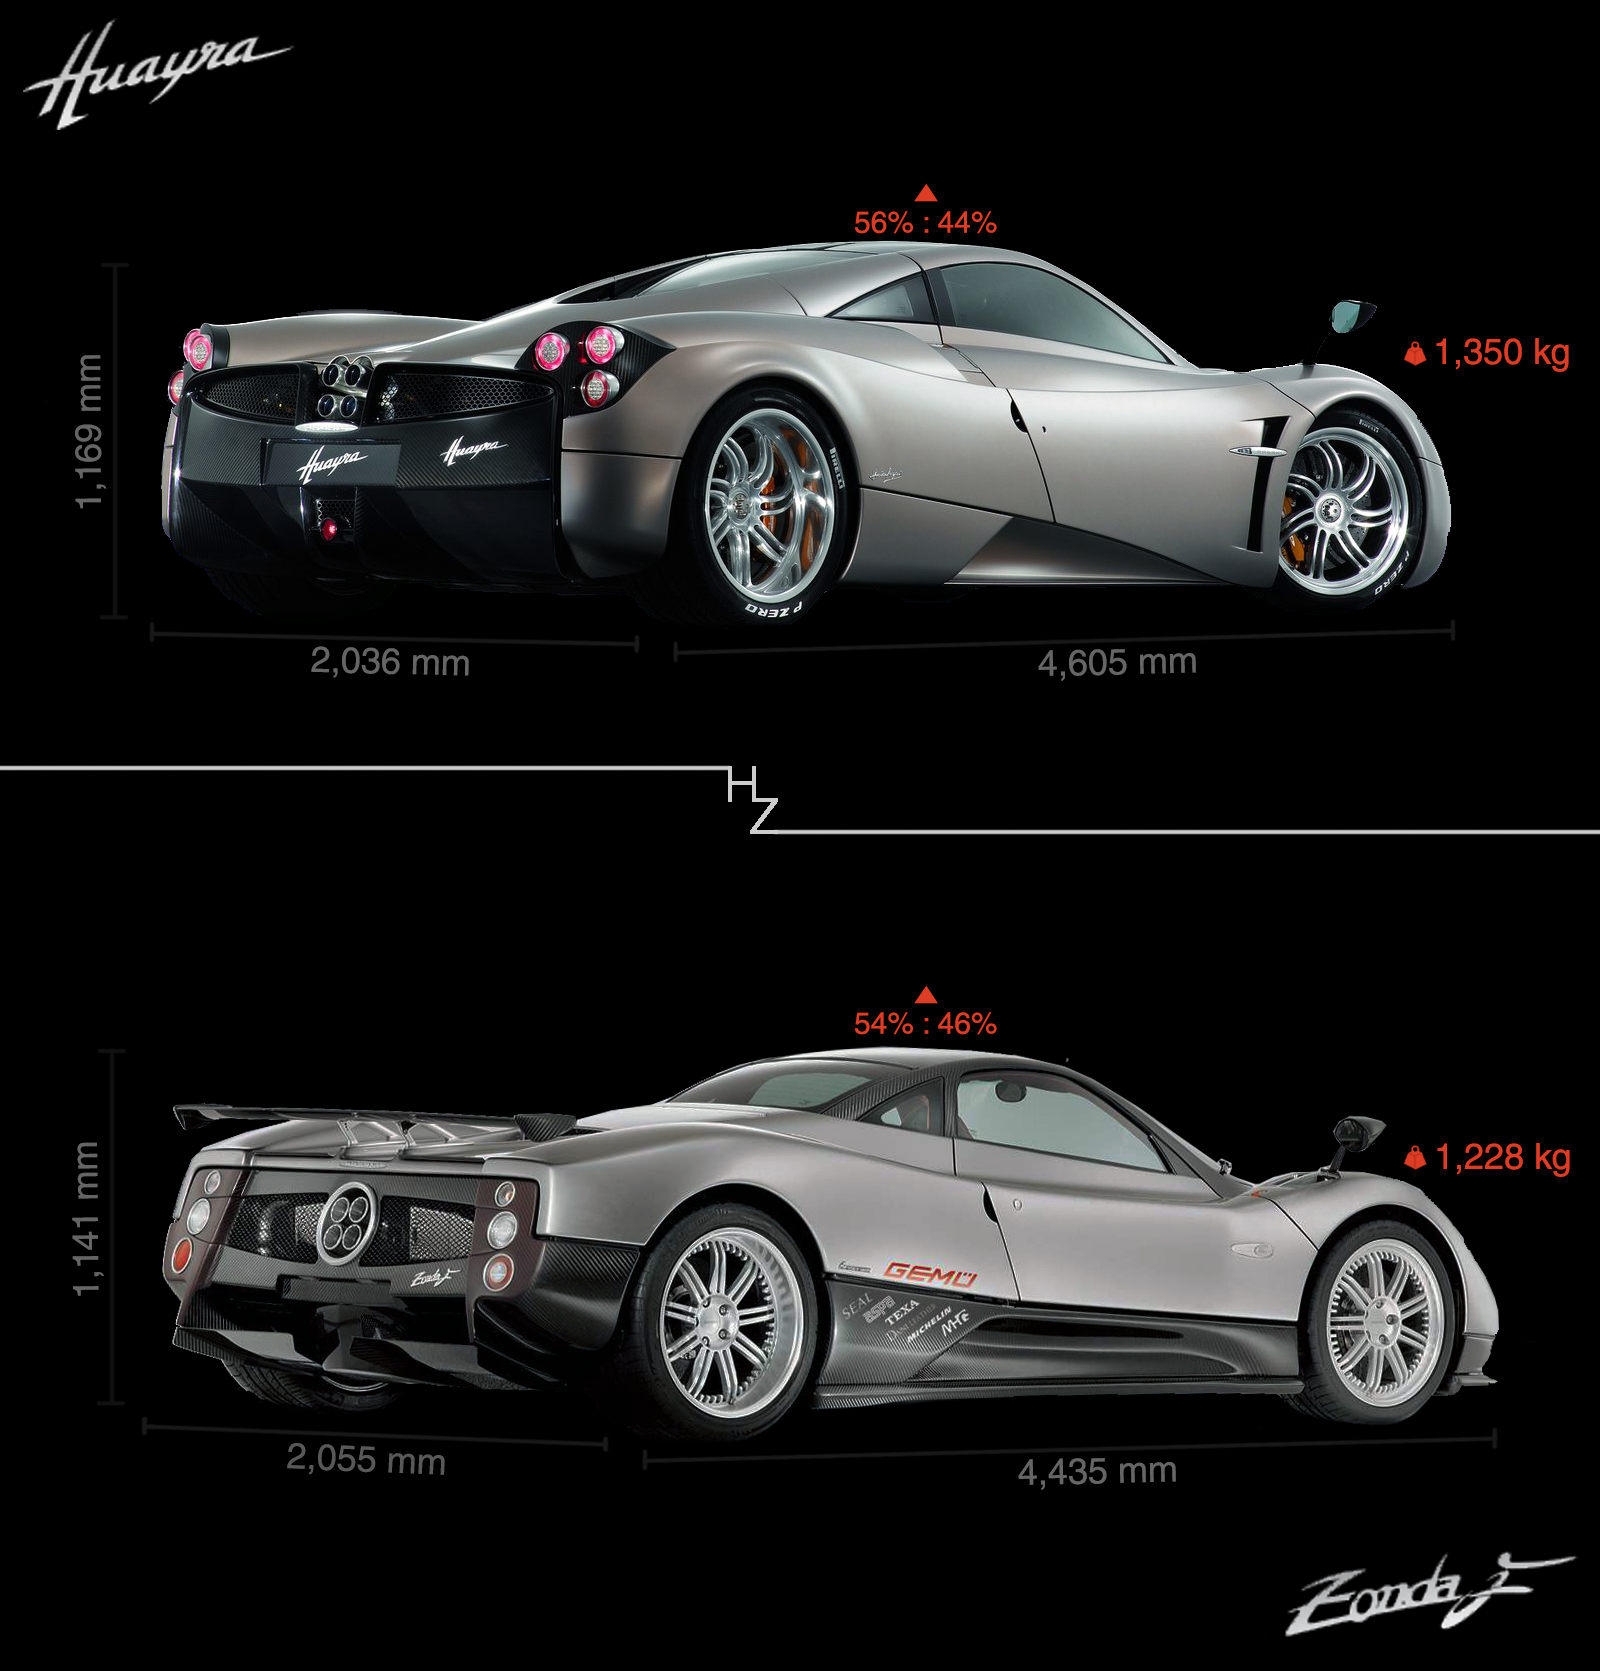 Supercar, Pagani, Huayra, Zonda, Legacy, Comparison, general description, weight, height, length, width